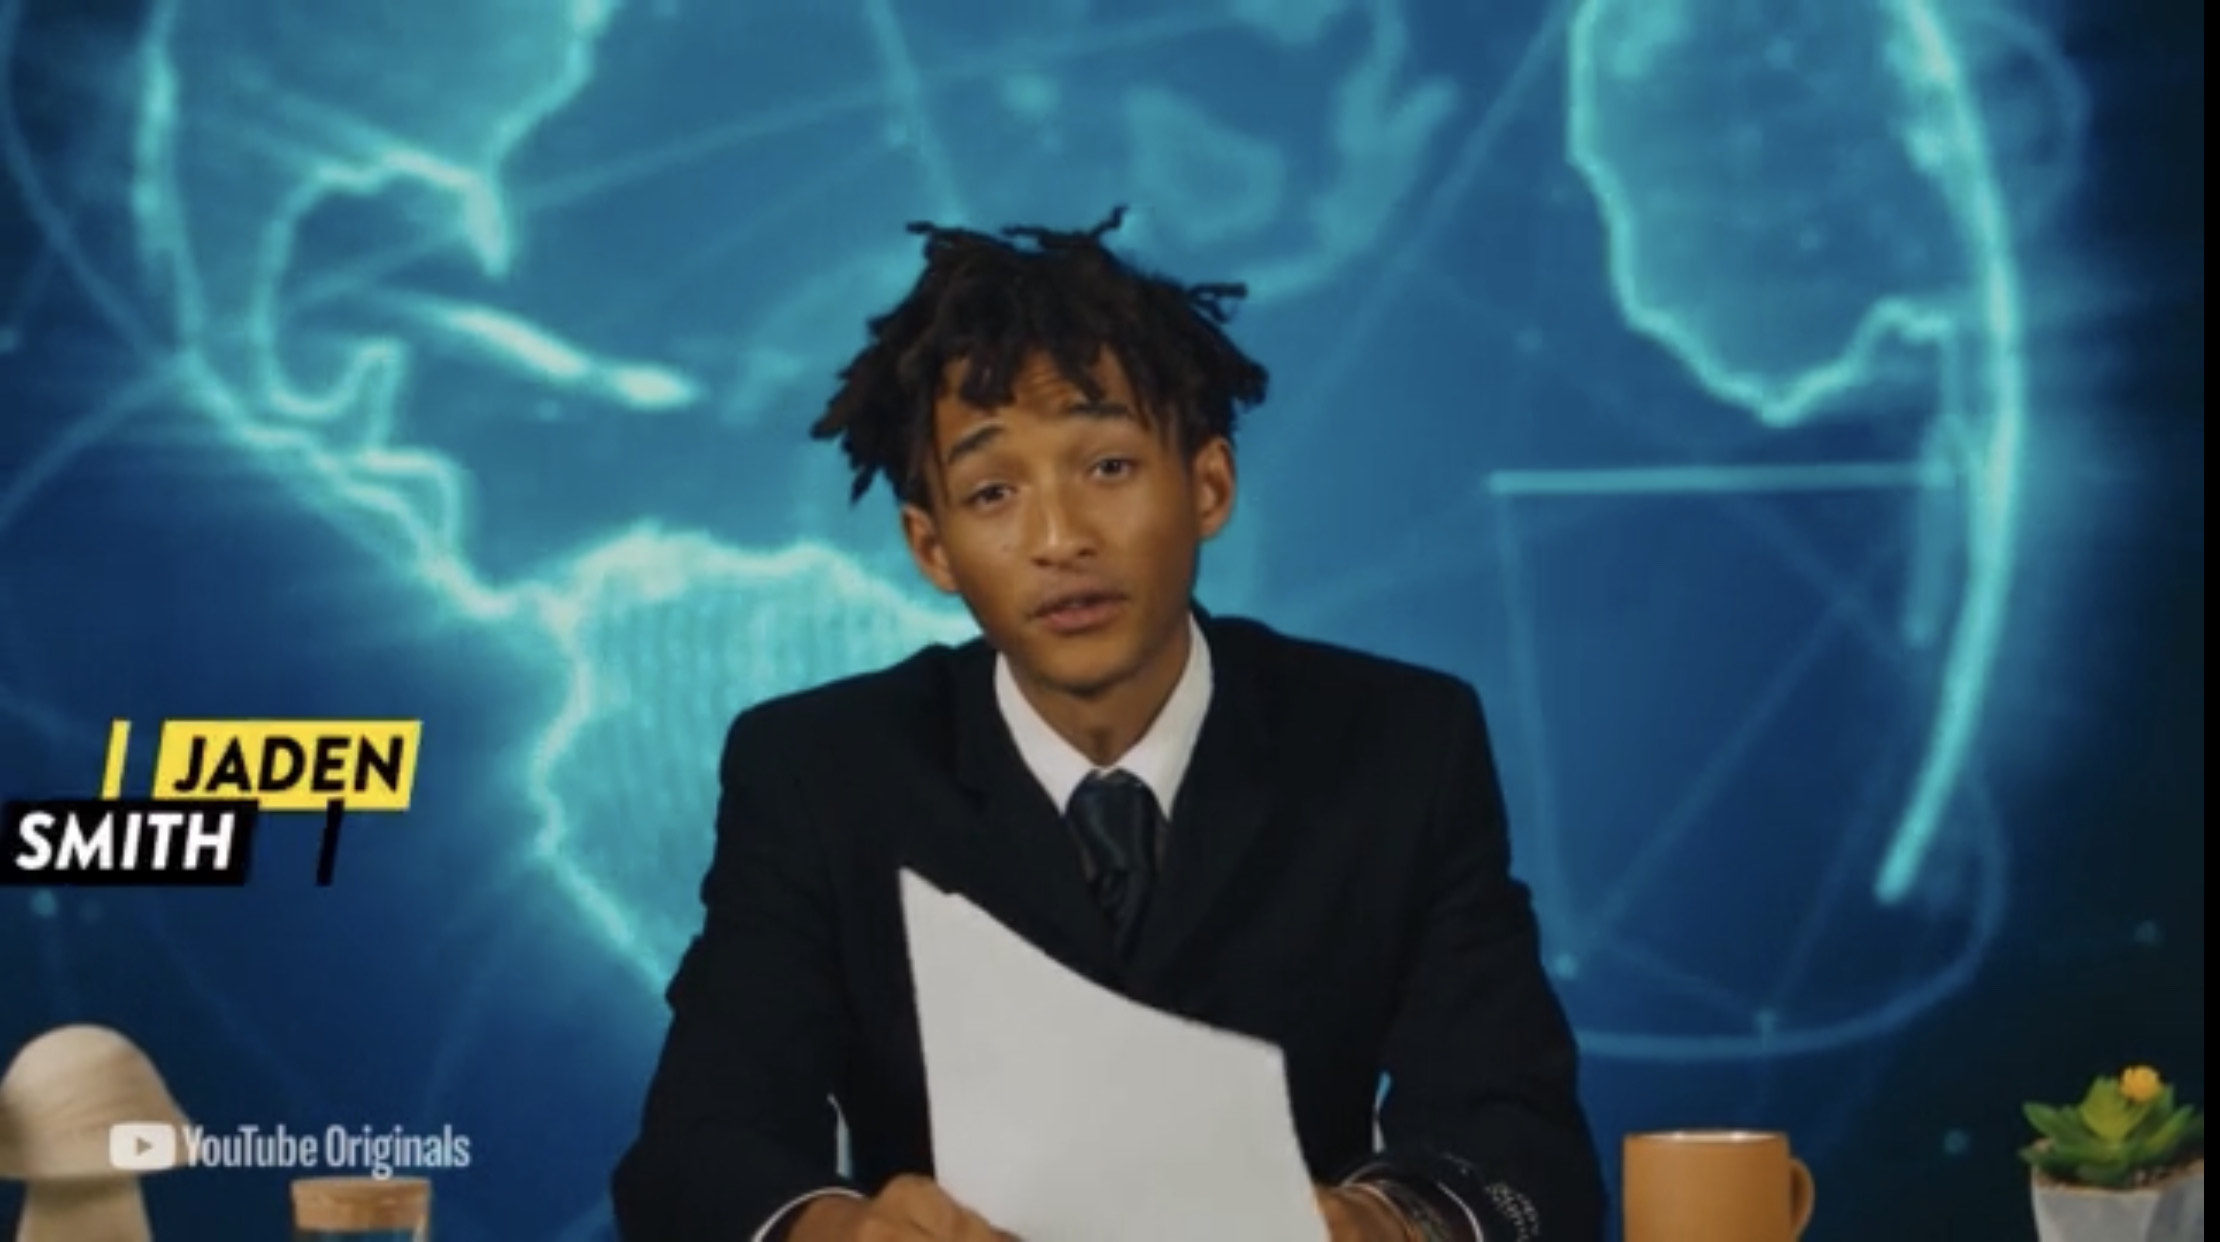 Jaden Smith Reports Climate Crisis Nightly In Exclusive 'Dear Earth' Clip